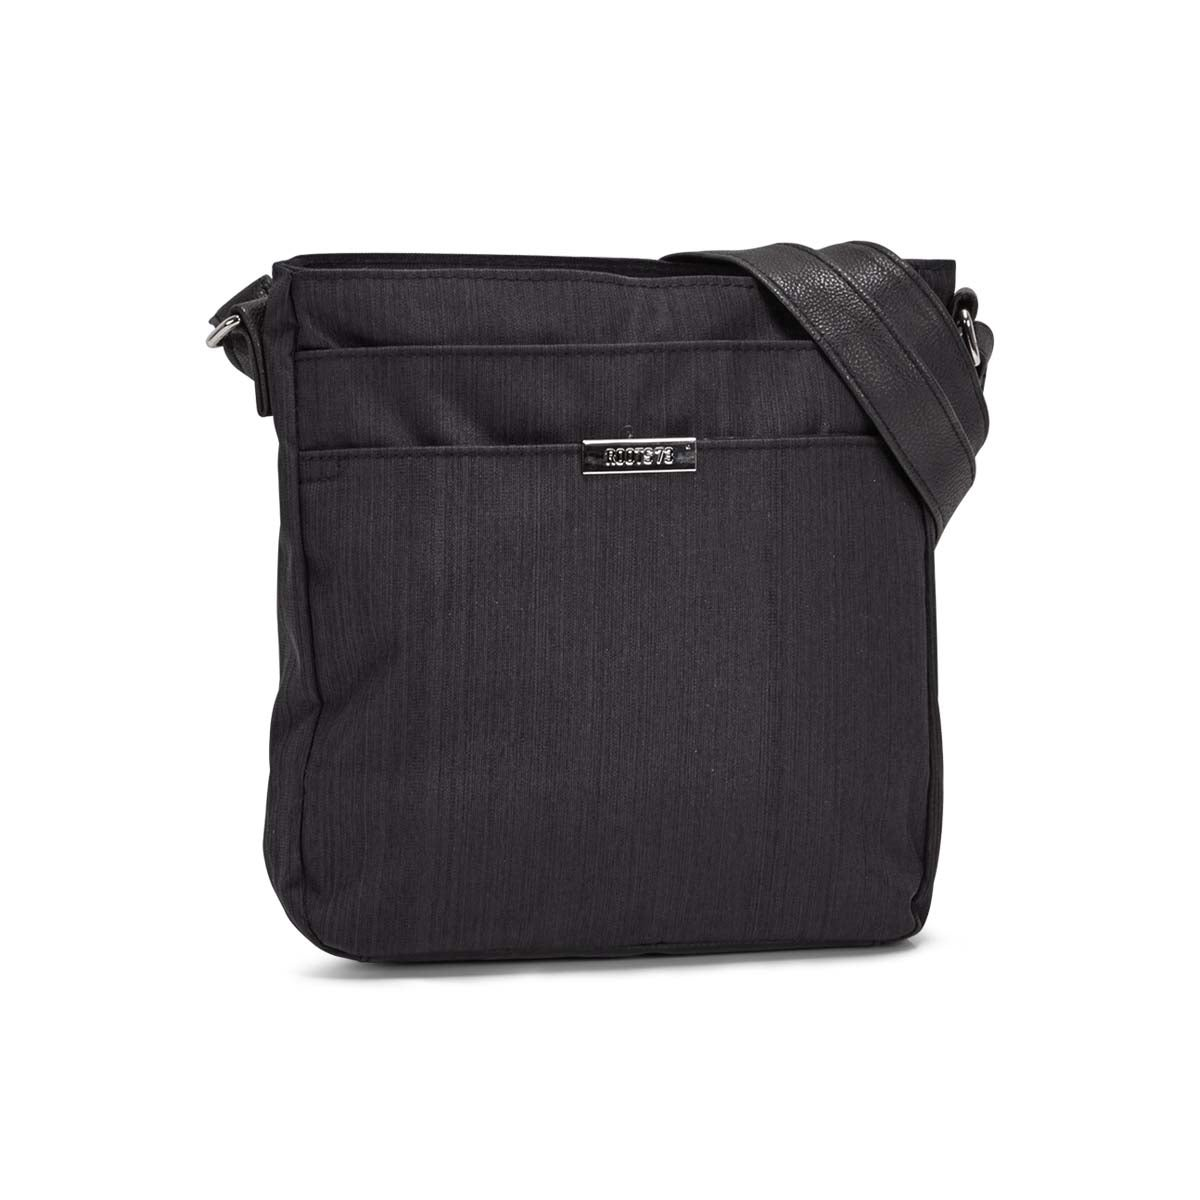 Lds black 2 front pocket crossbody